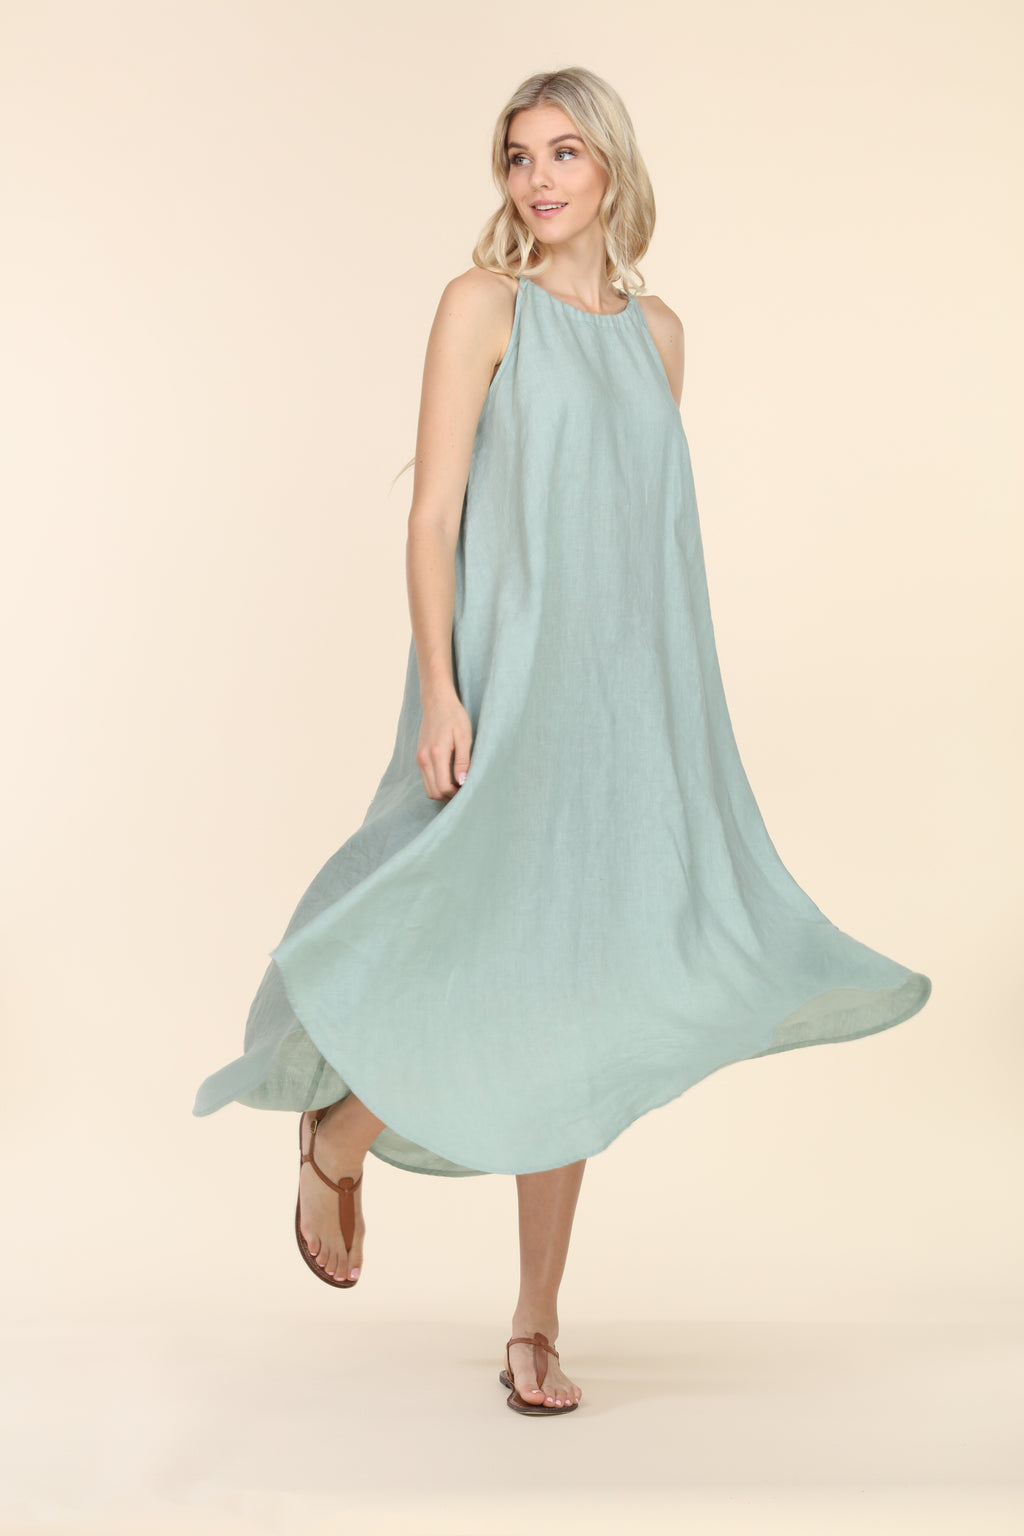 Linen Summer Dress - Tiffany